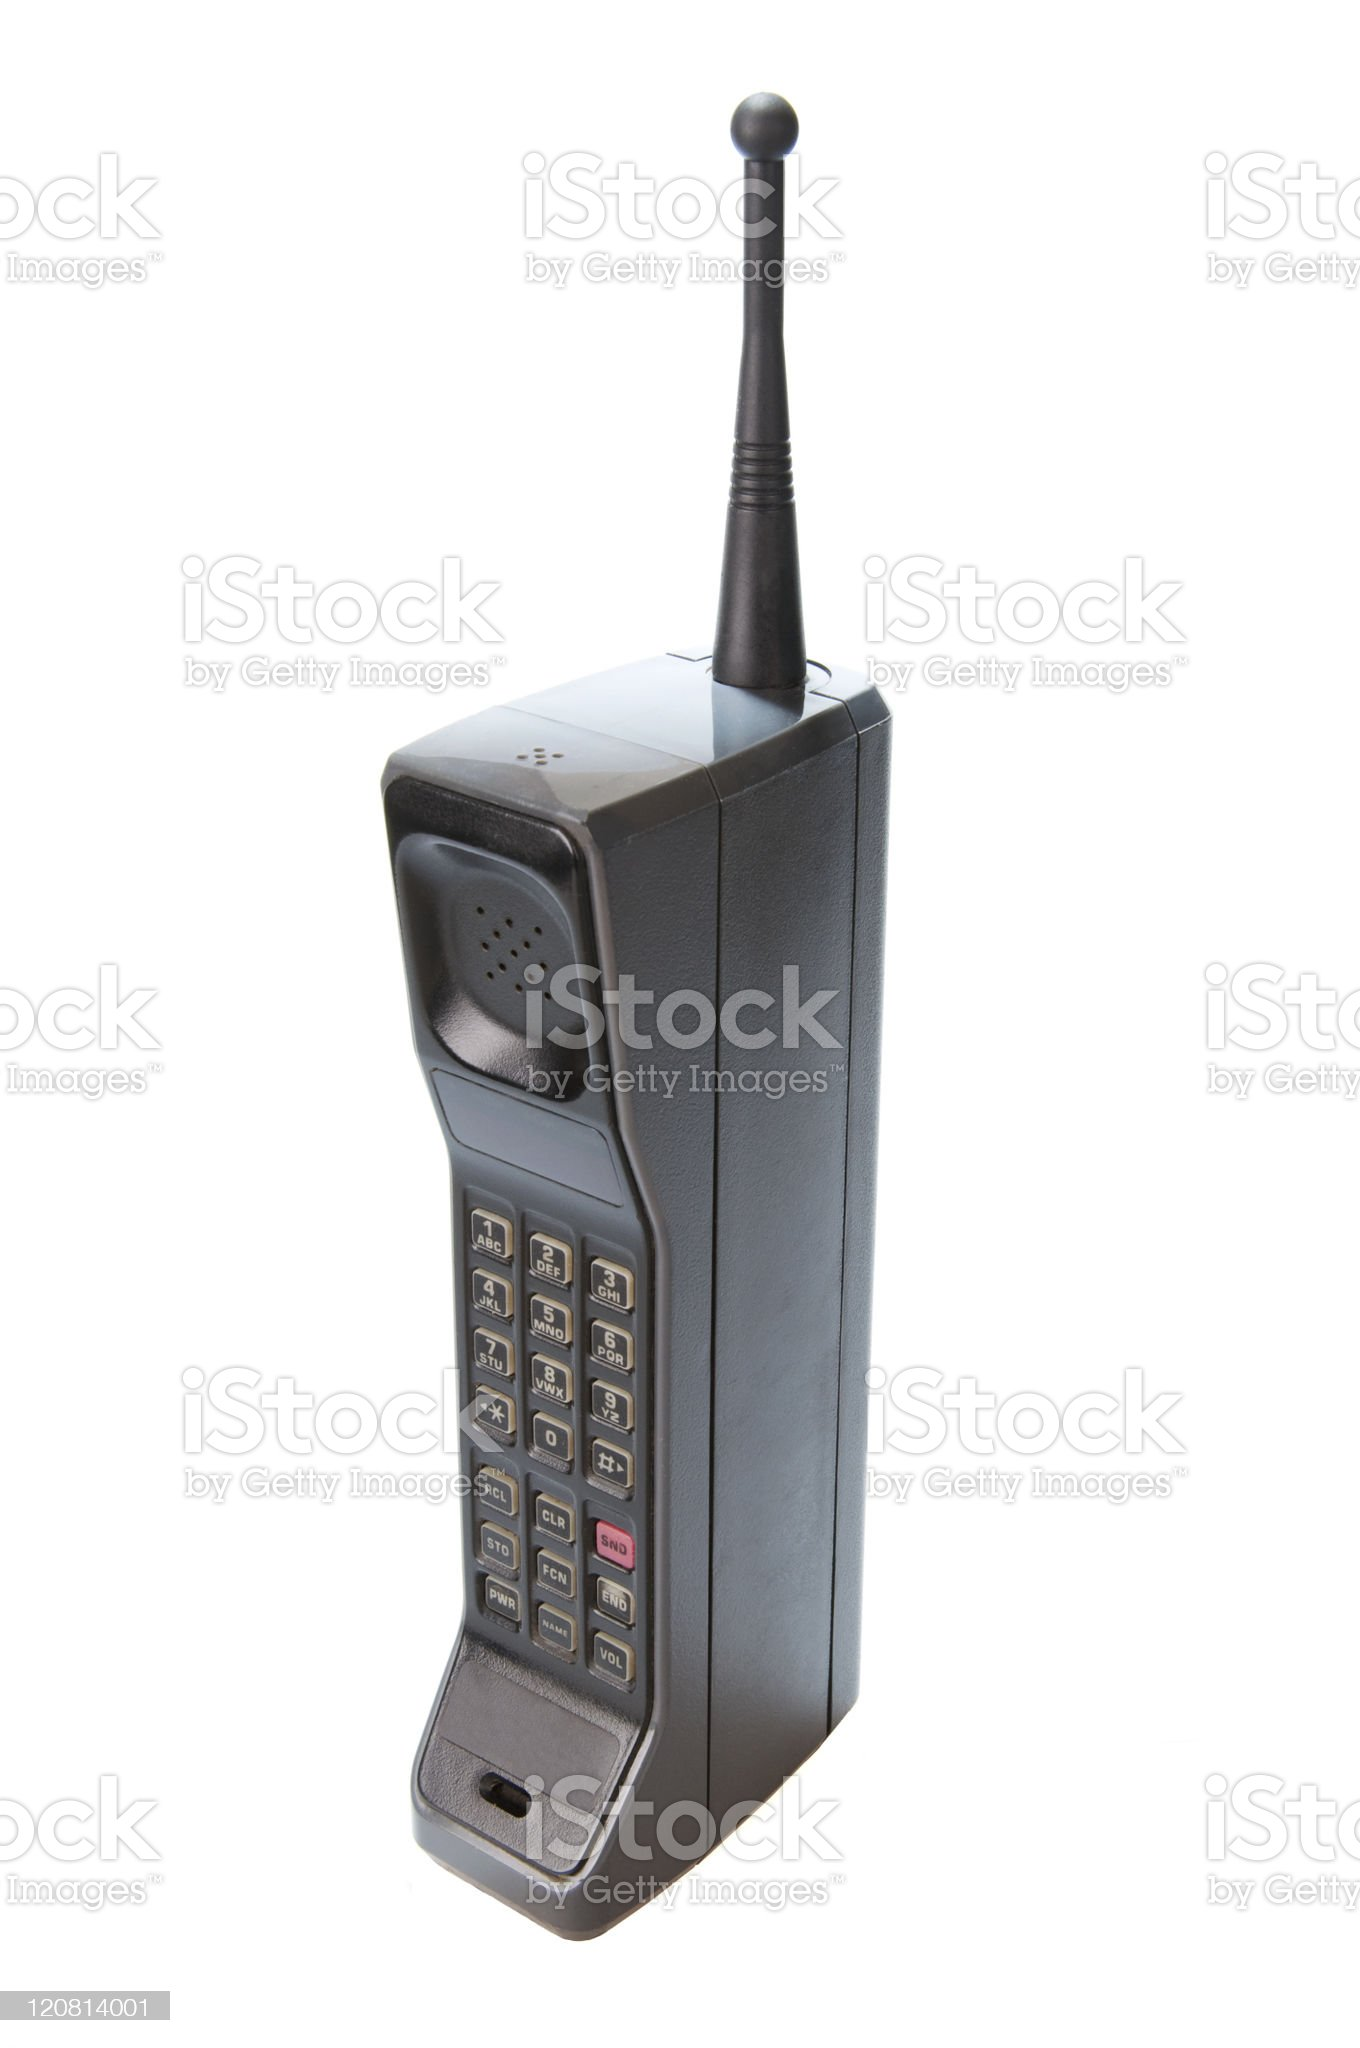 1980s Retro Cell Phone royalty-free stock photo